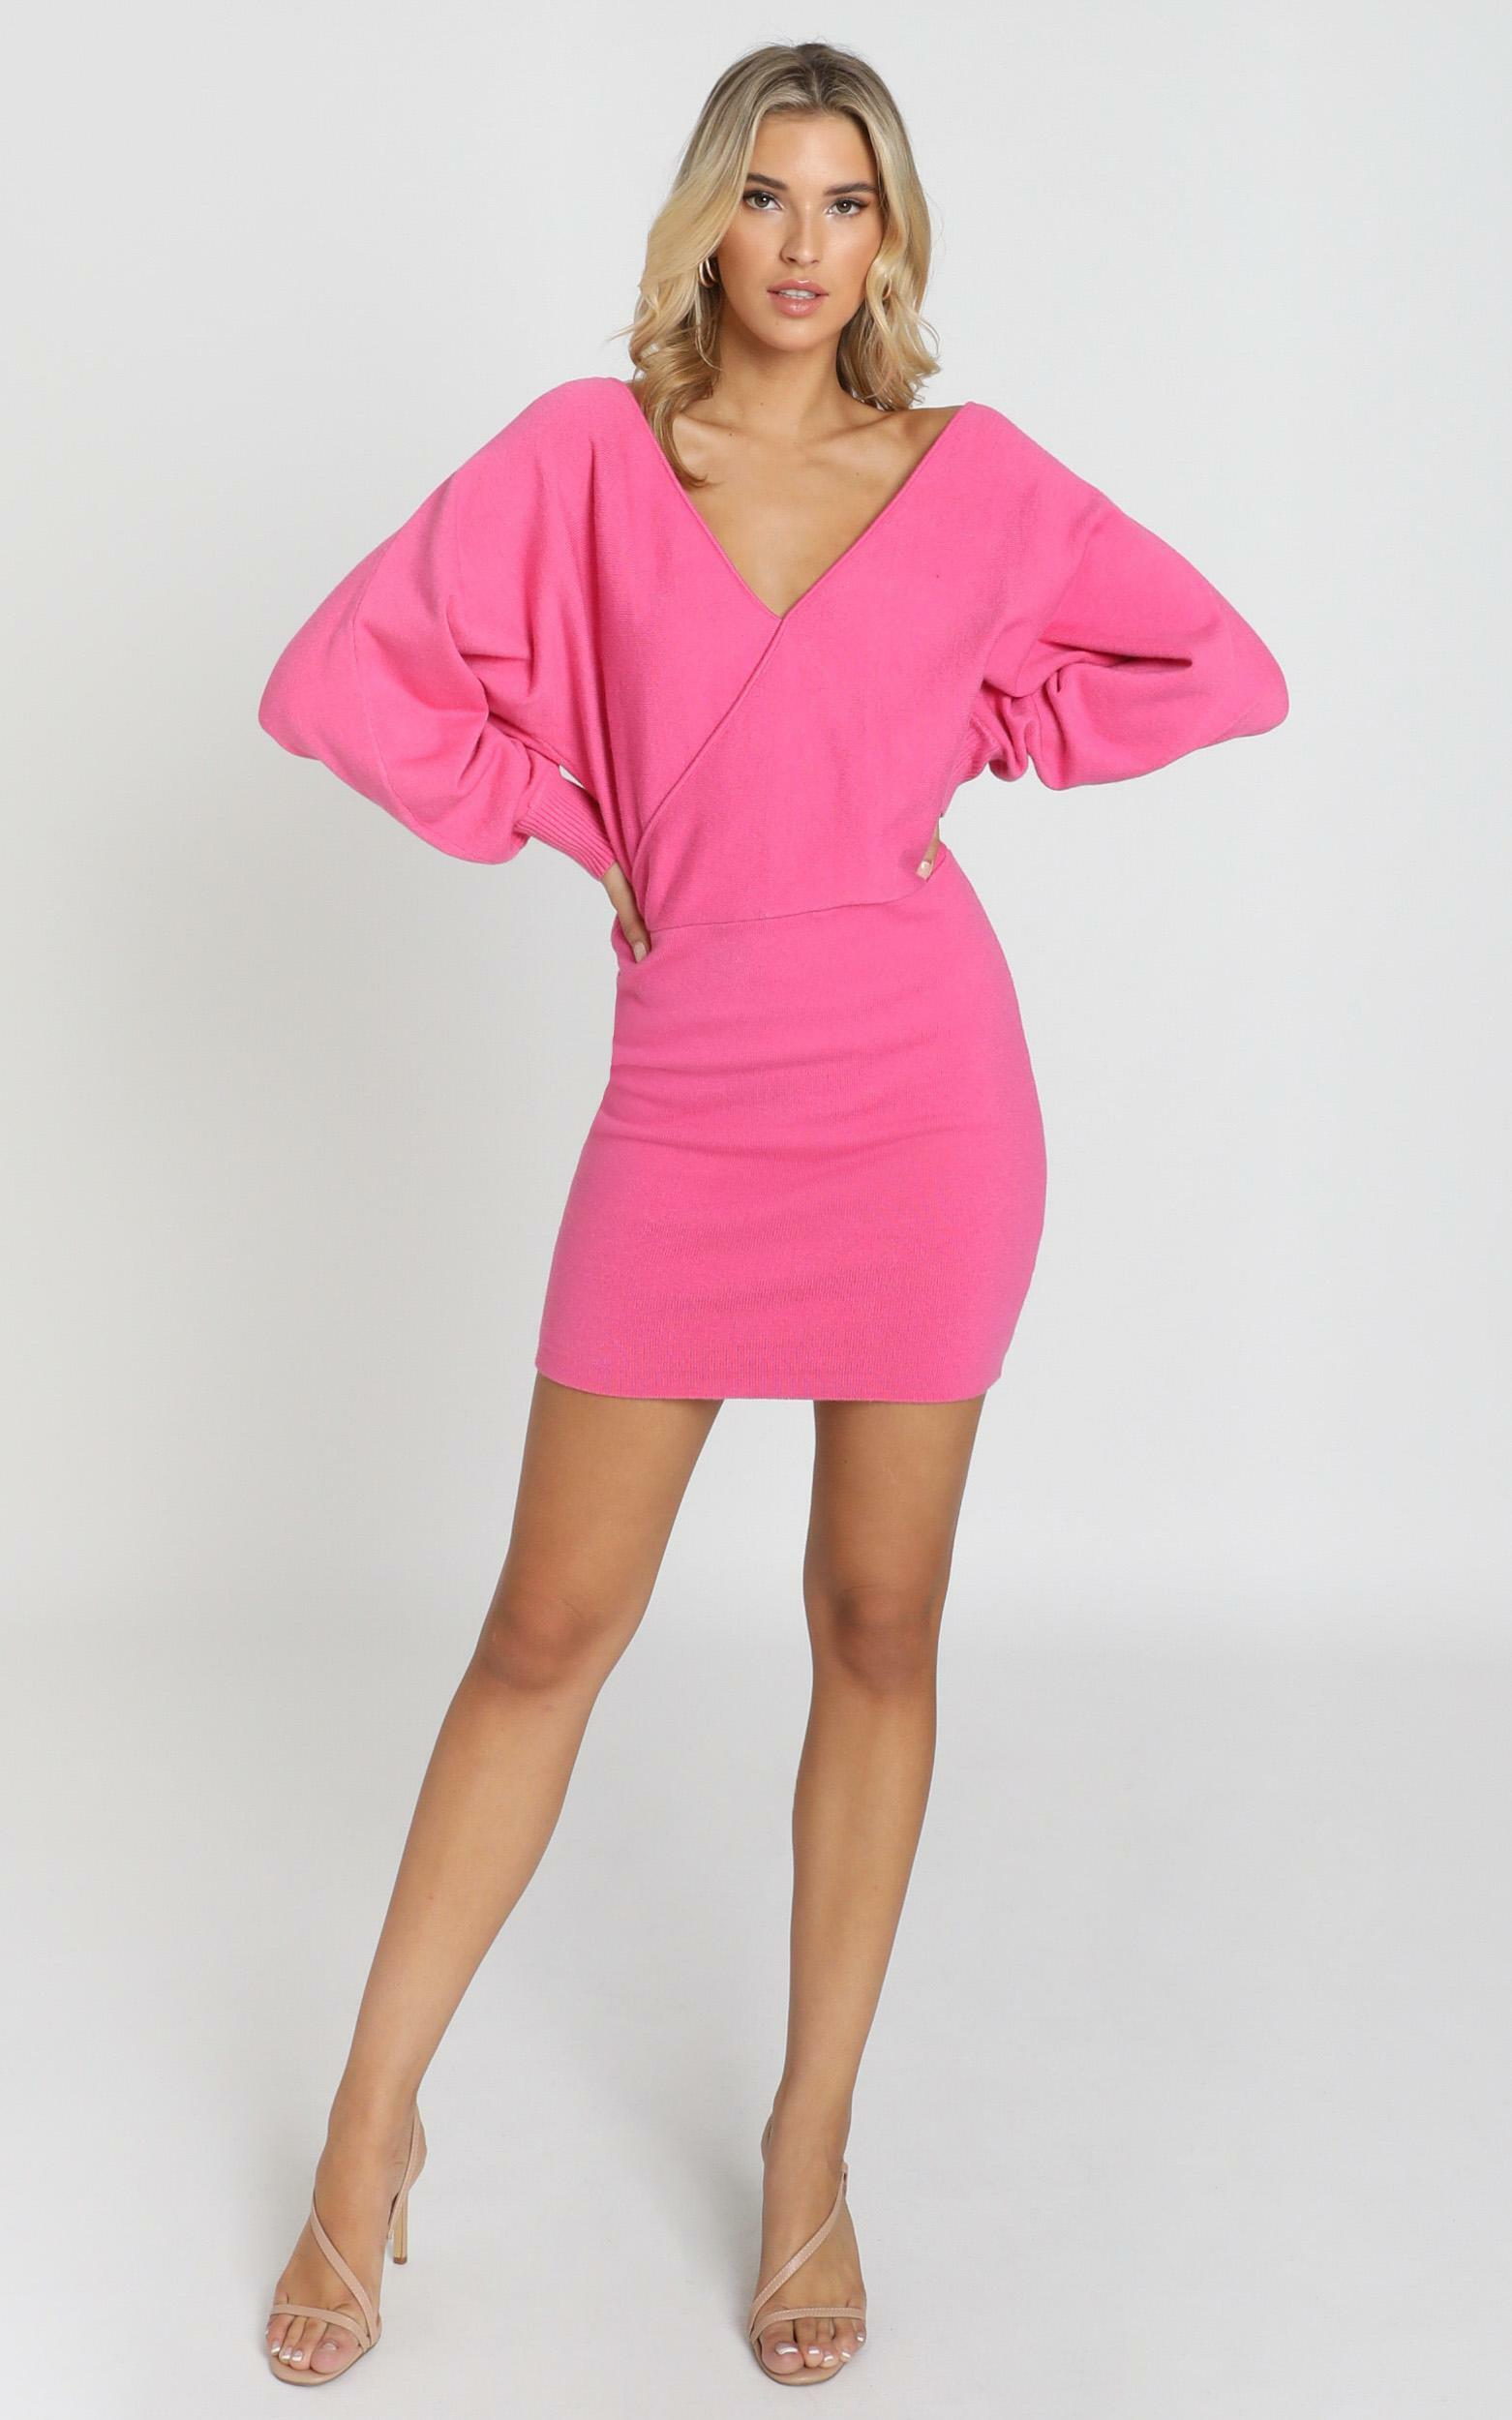 Midnight Confessions Knit Dress in hot pink - 8 (S), Pink, hi-res image number null